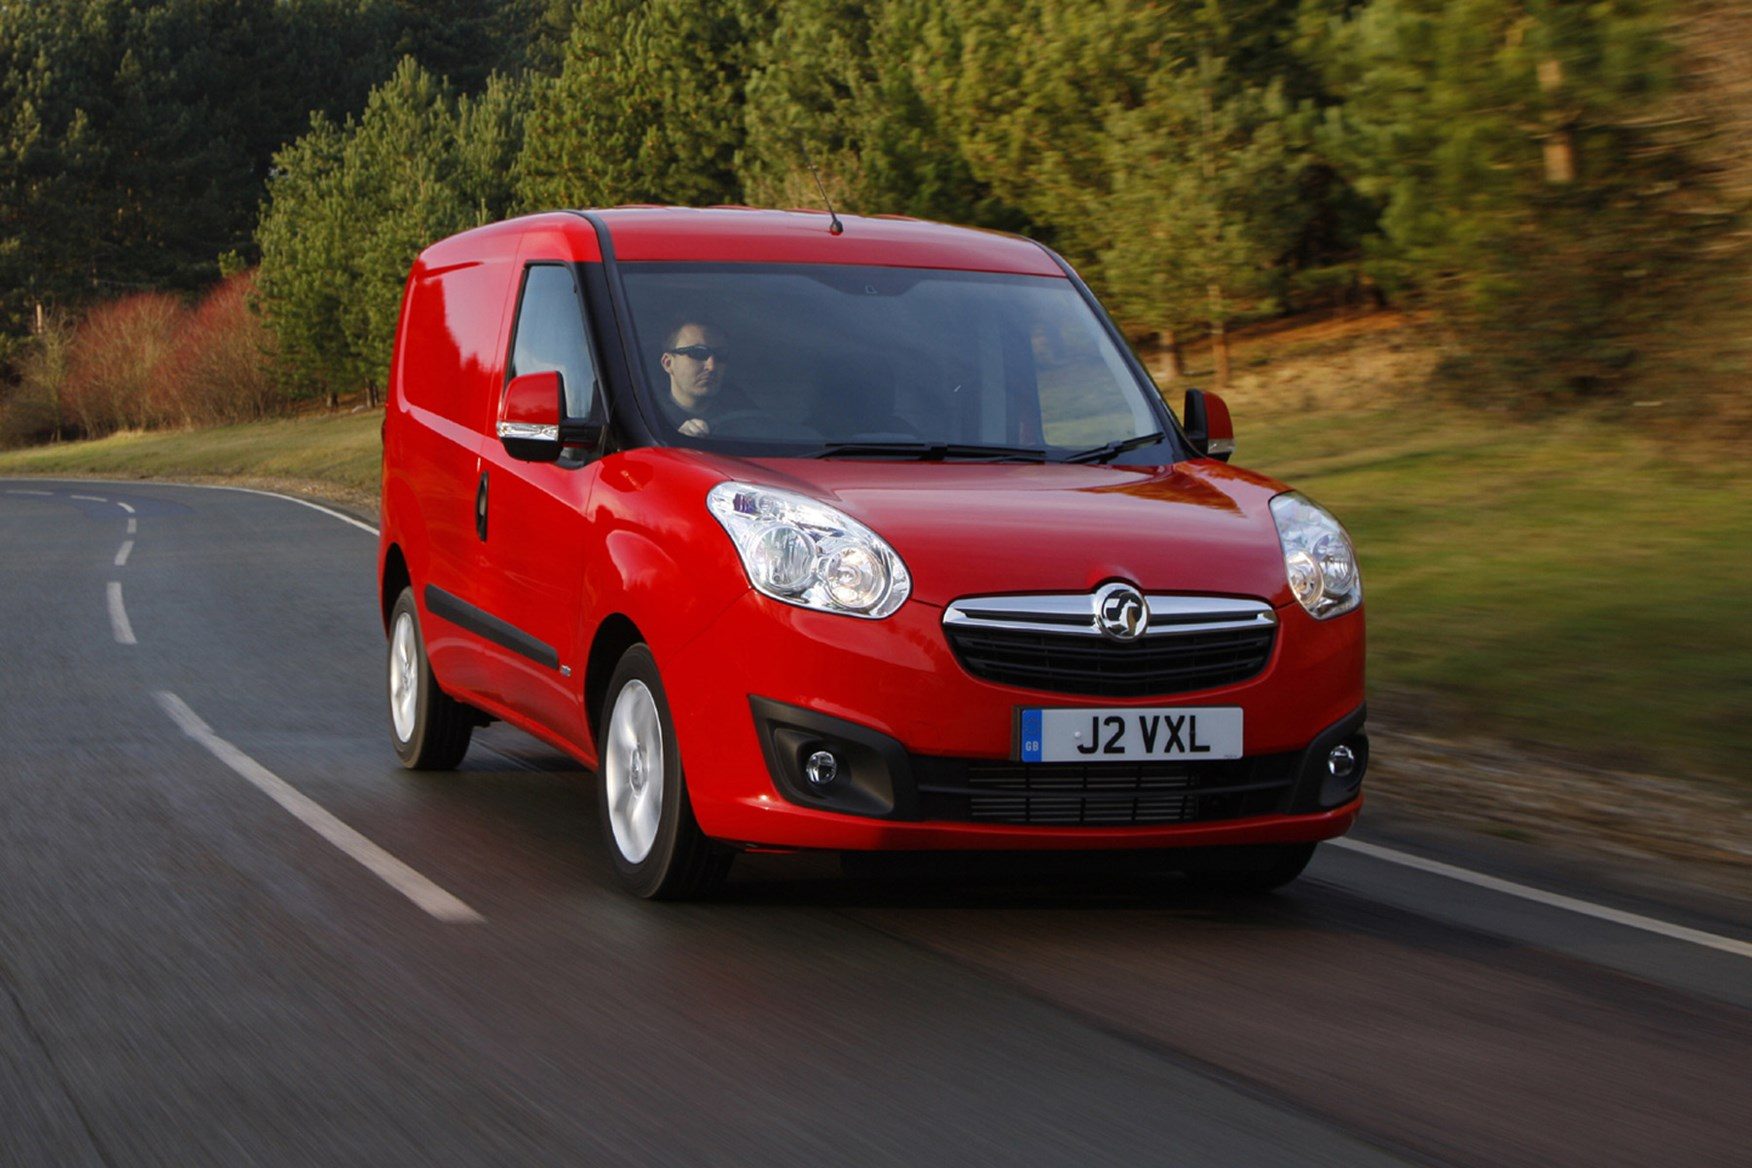 Vauxhall Combo full review on Parkers Vans - on the road